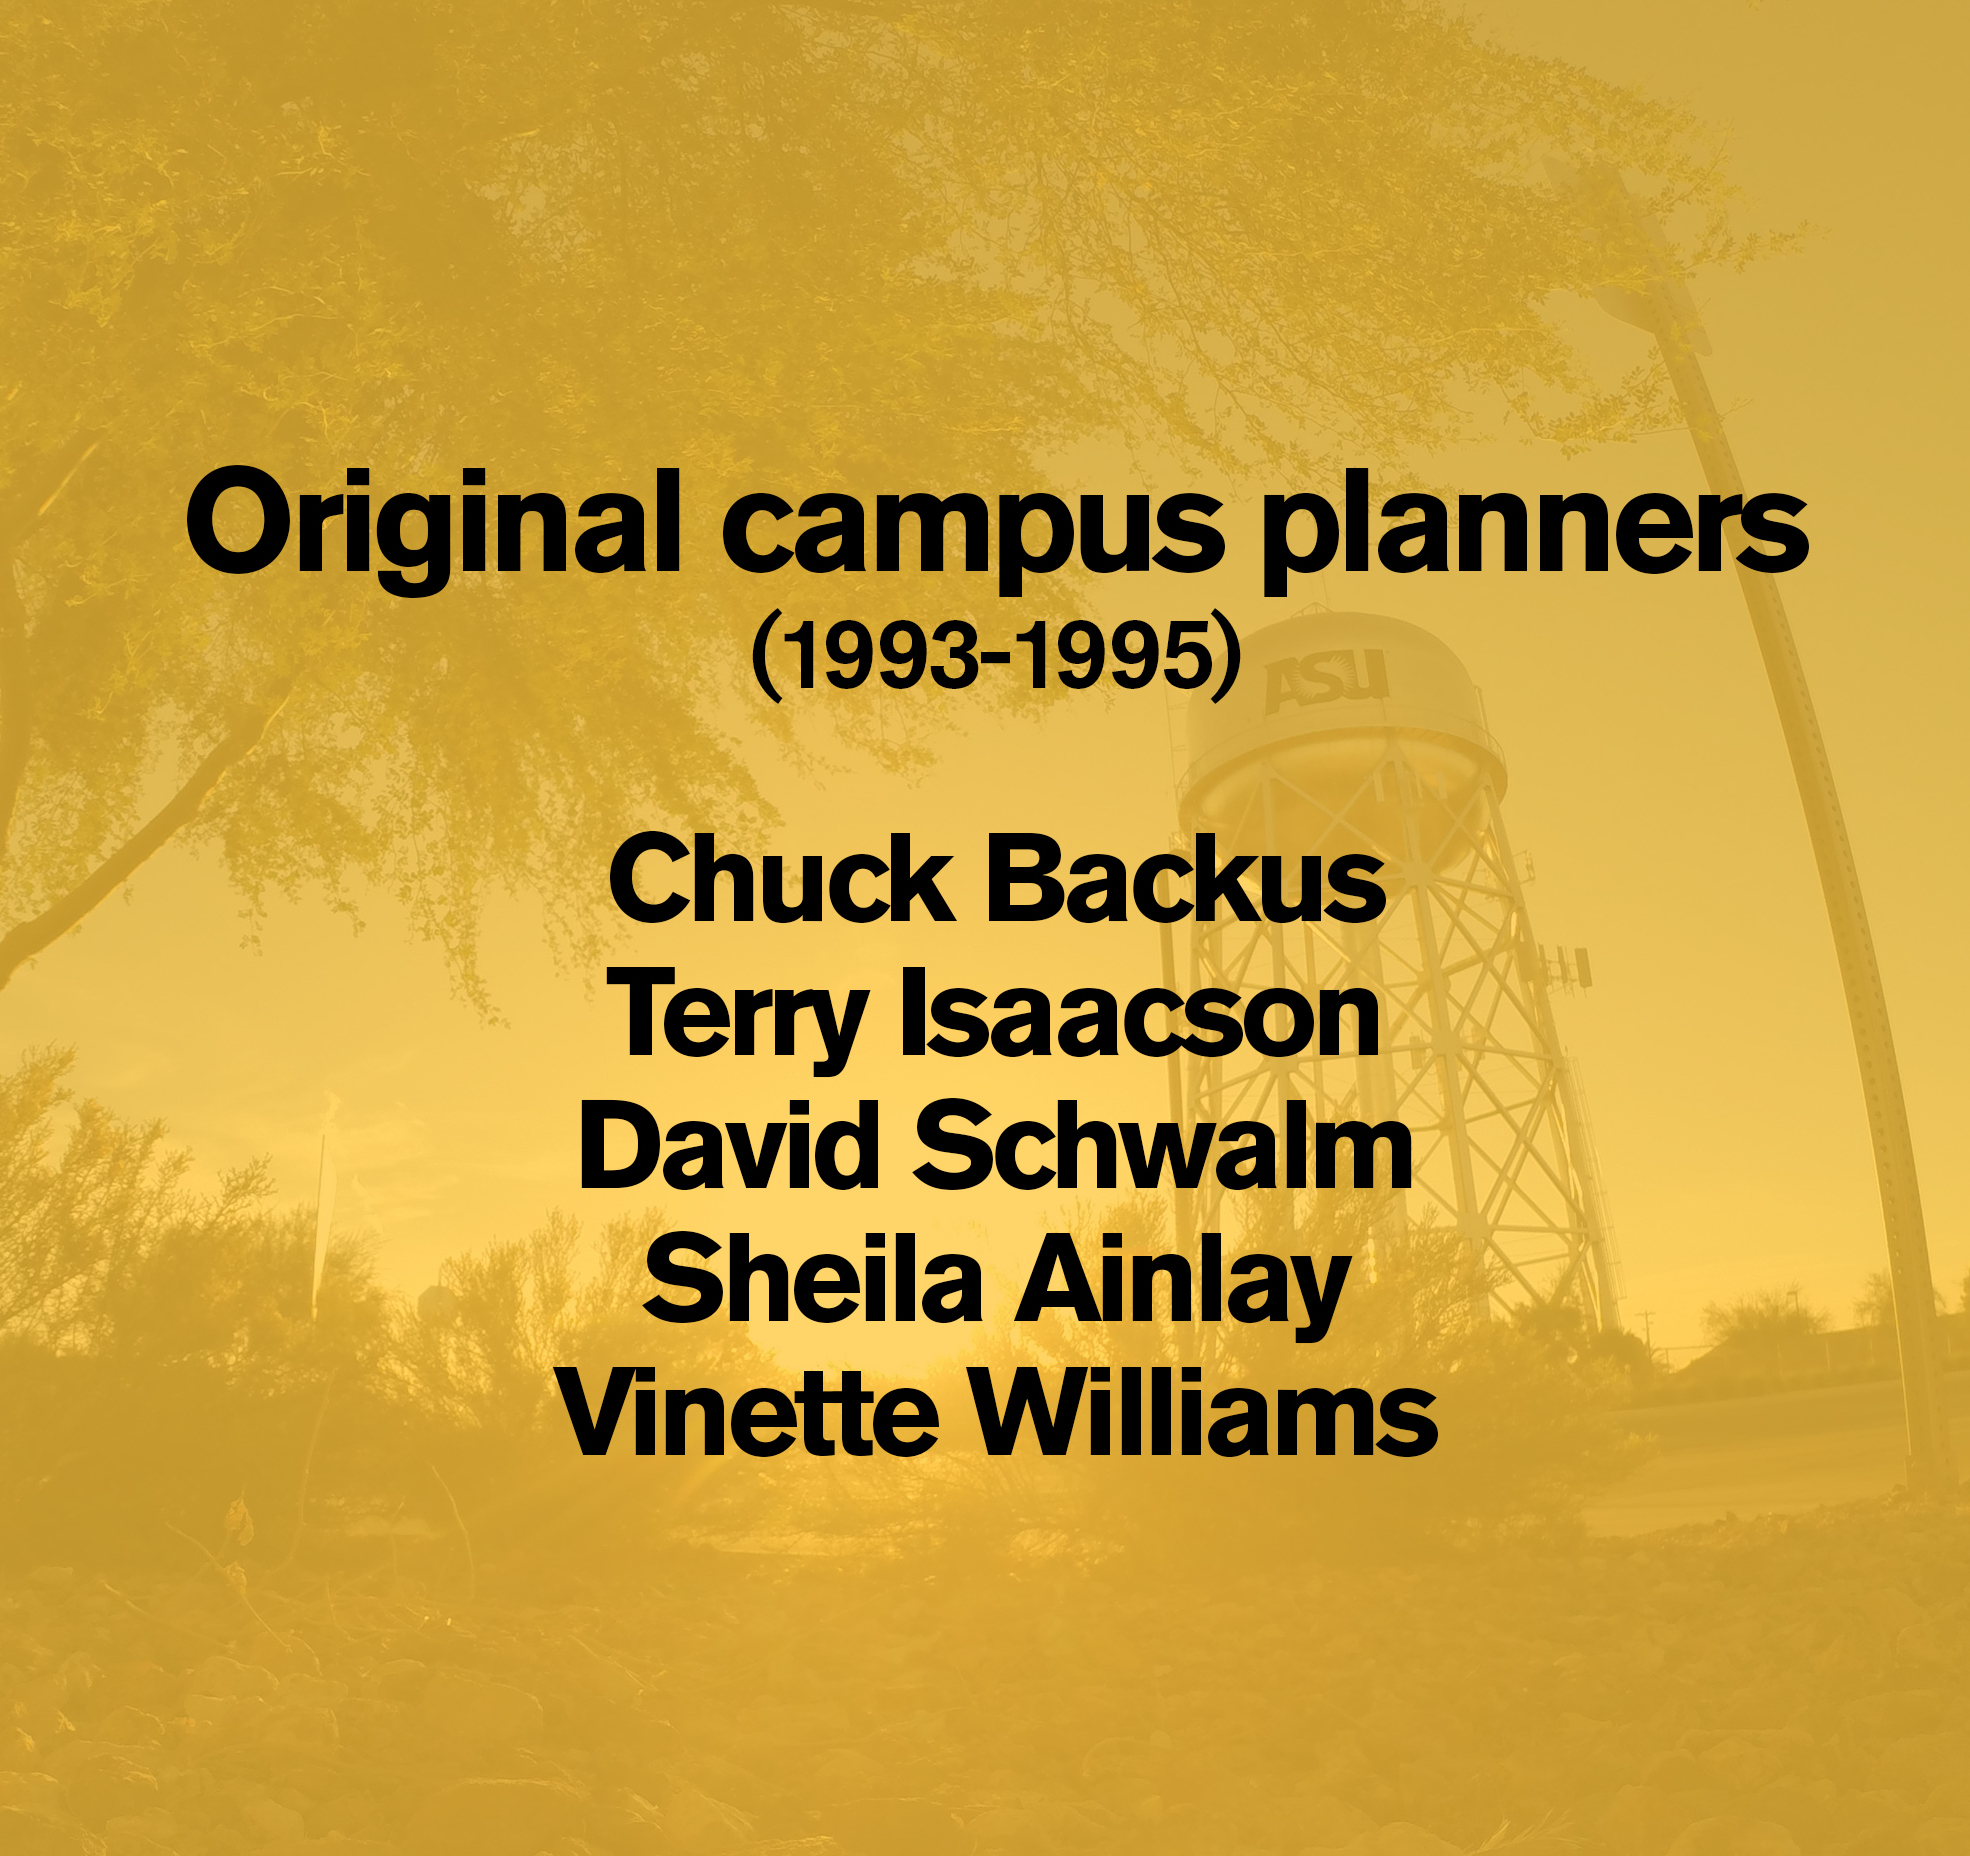 """Graphic with """"Original campus planners (1993-1995) Chuck Backus Terry Isaacson David Schwalm Sheila Ainlay Vinette Williams"""""""